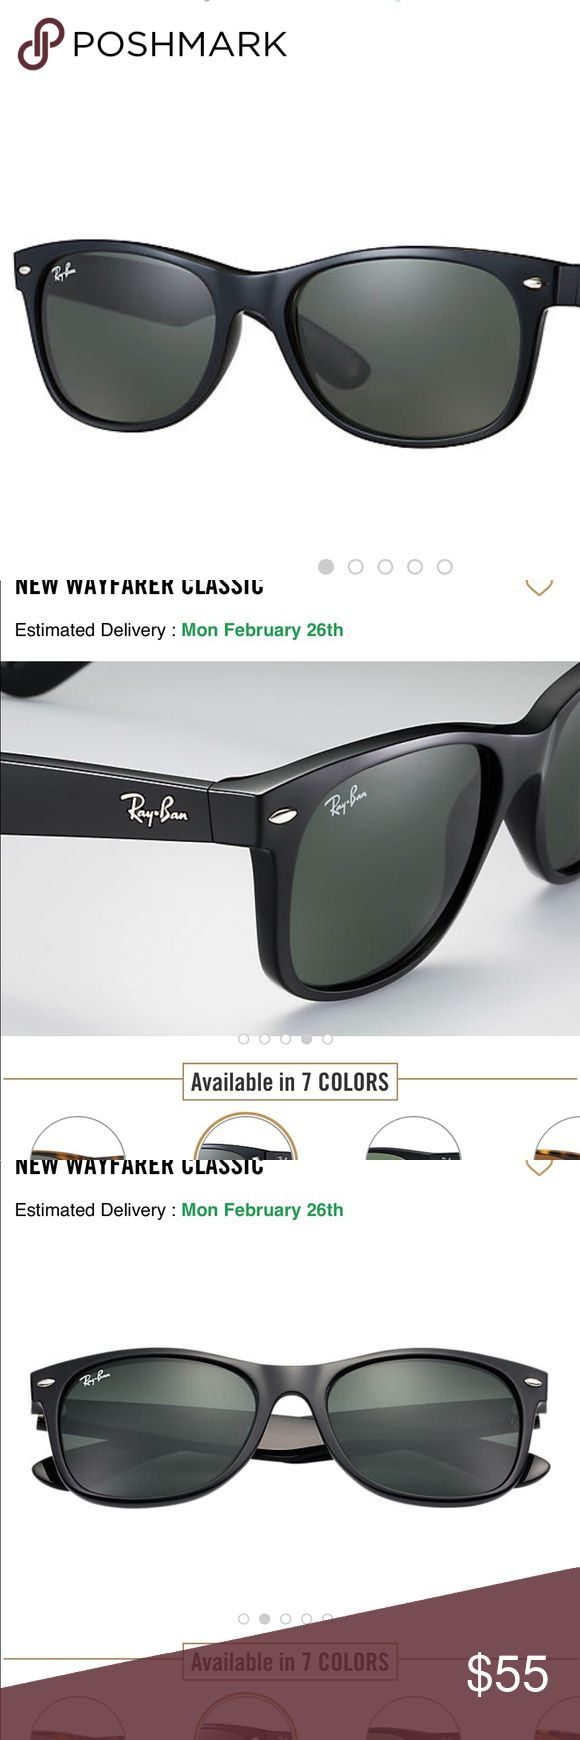 Ray Ban WAYFARER CLASSIC in Black FRAME & LENSES  Frame material: NylonFrame color: Black Lenses: Green Classic G-15 SIZE  Shape: Square Size Lens-Bridge: 52 18 Temple Length: Ray-Ban Accessories Sunglasses